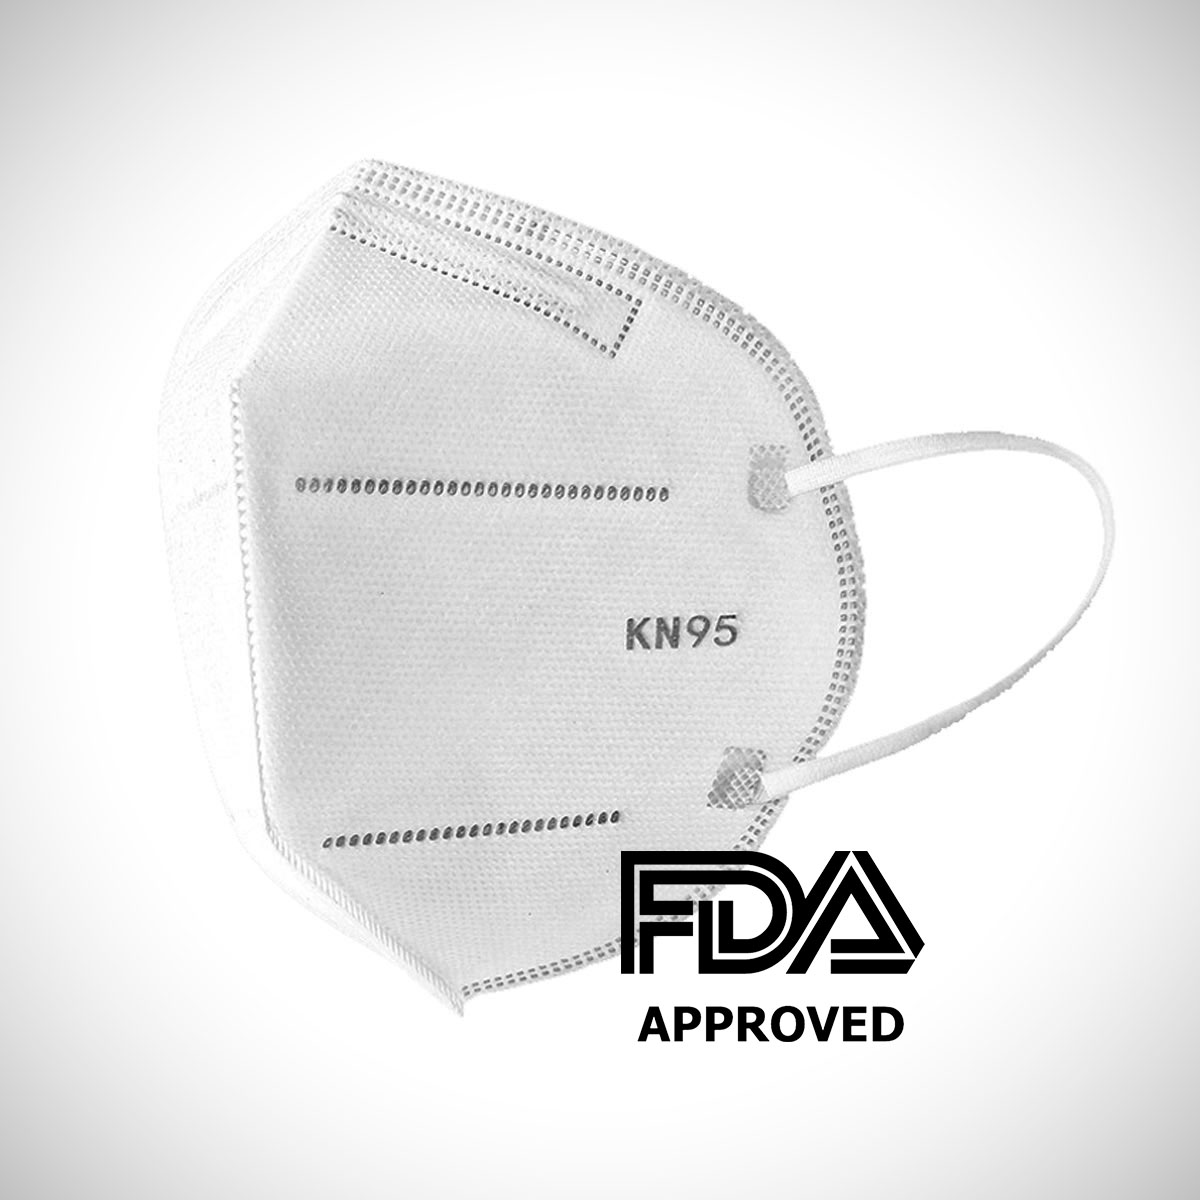 FDA Approved KN95 Face Mask - Shop Healthy PPE